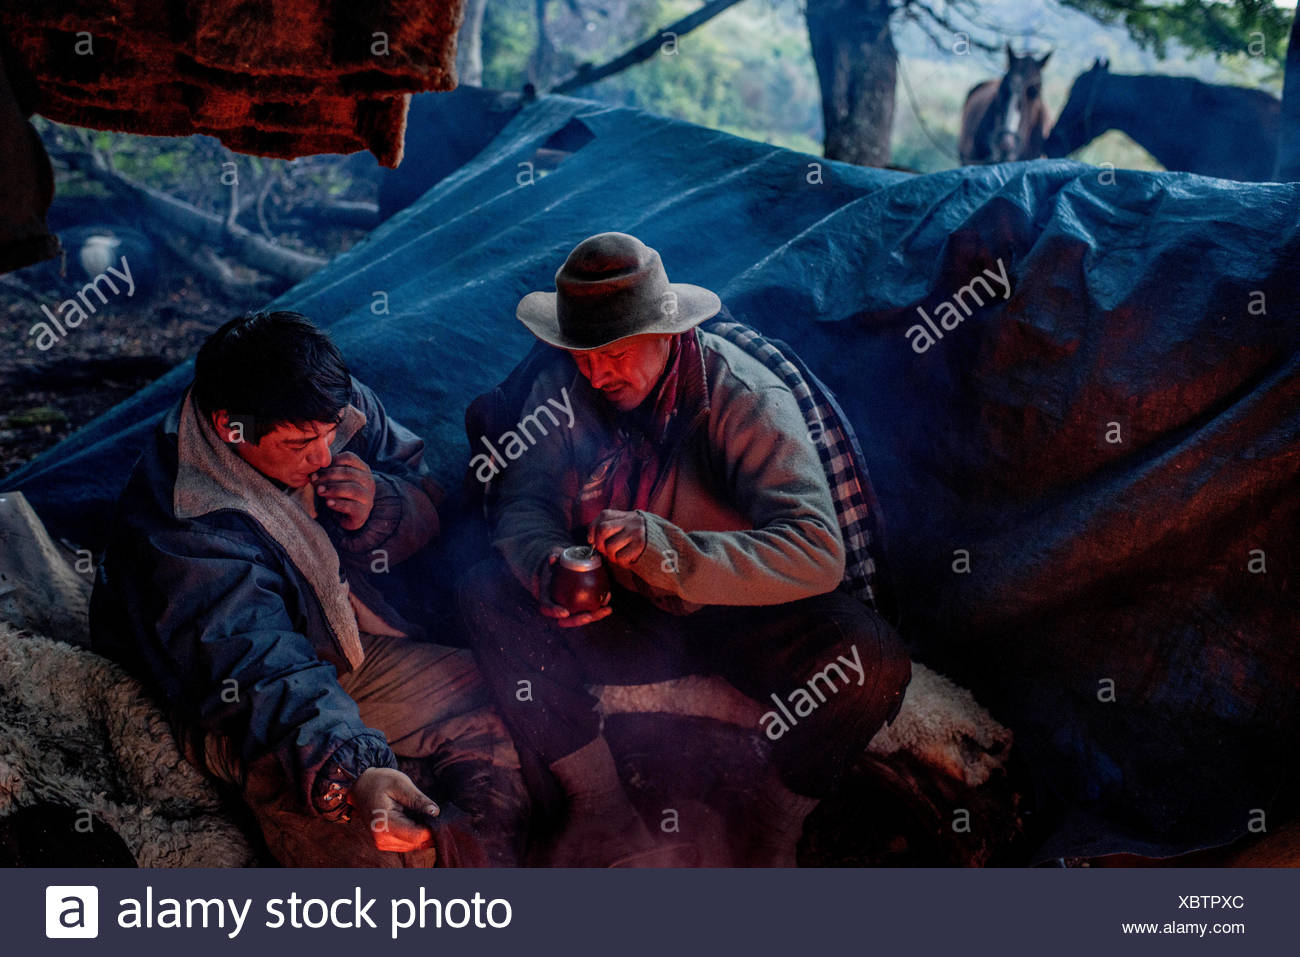 Bagualeros, cowboys who capture feral livestock, drink mate tea while camping. - Stock Image